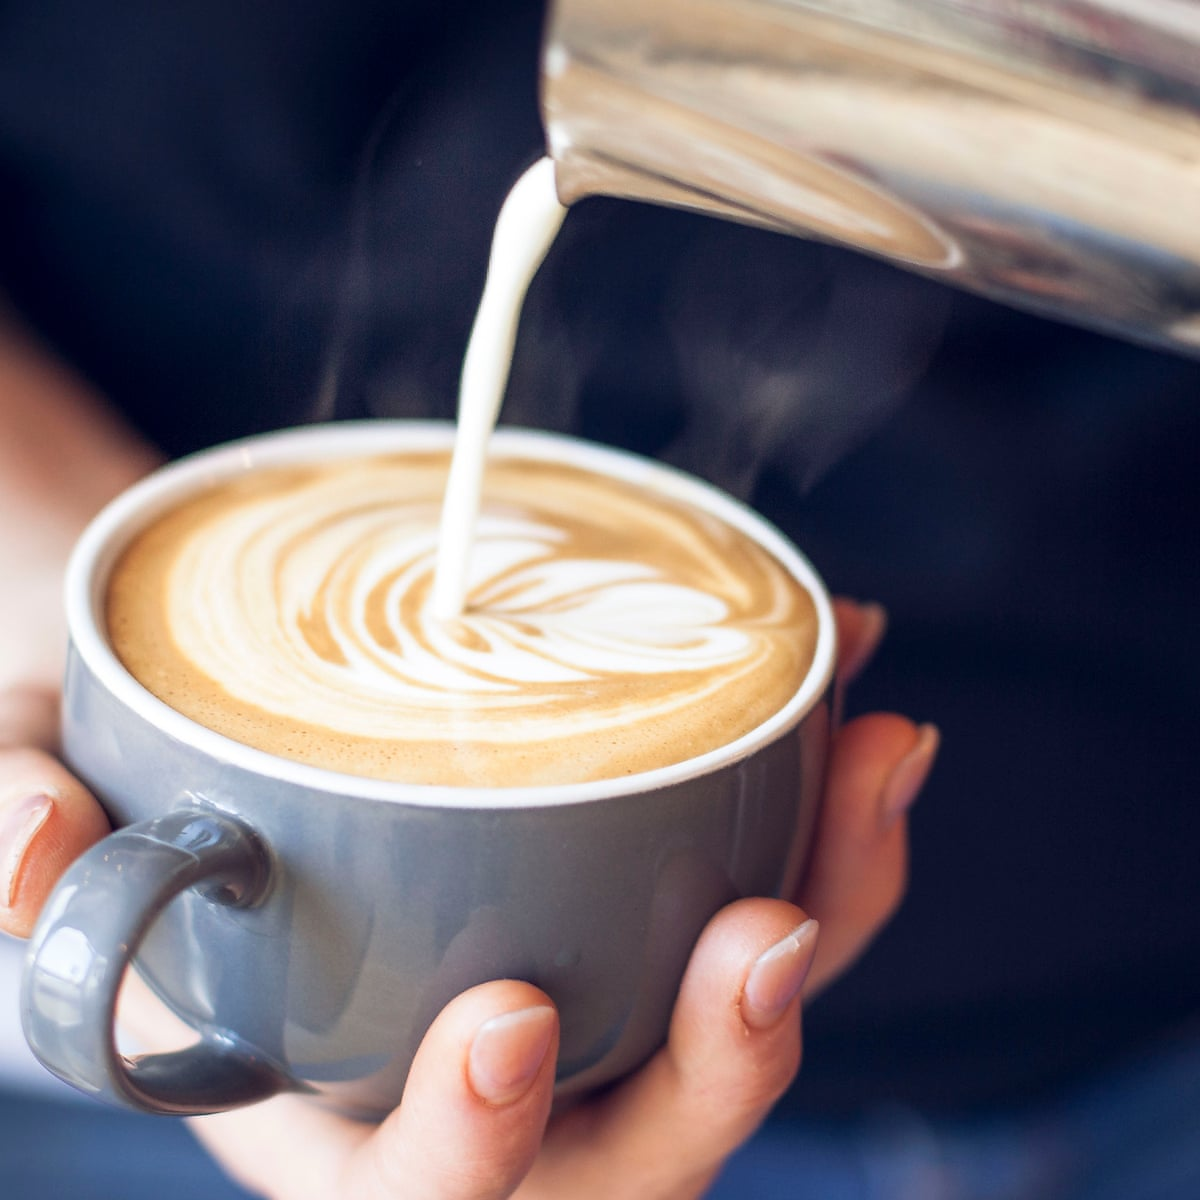 No safe level of coffee drinking for pregnant women, study says | Life and  style | The Guardian